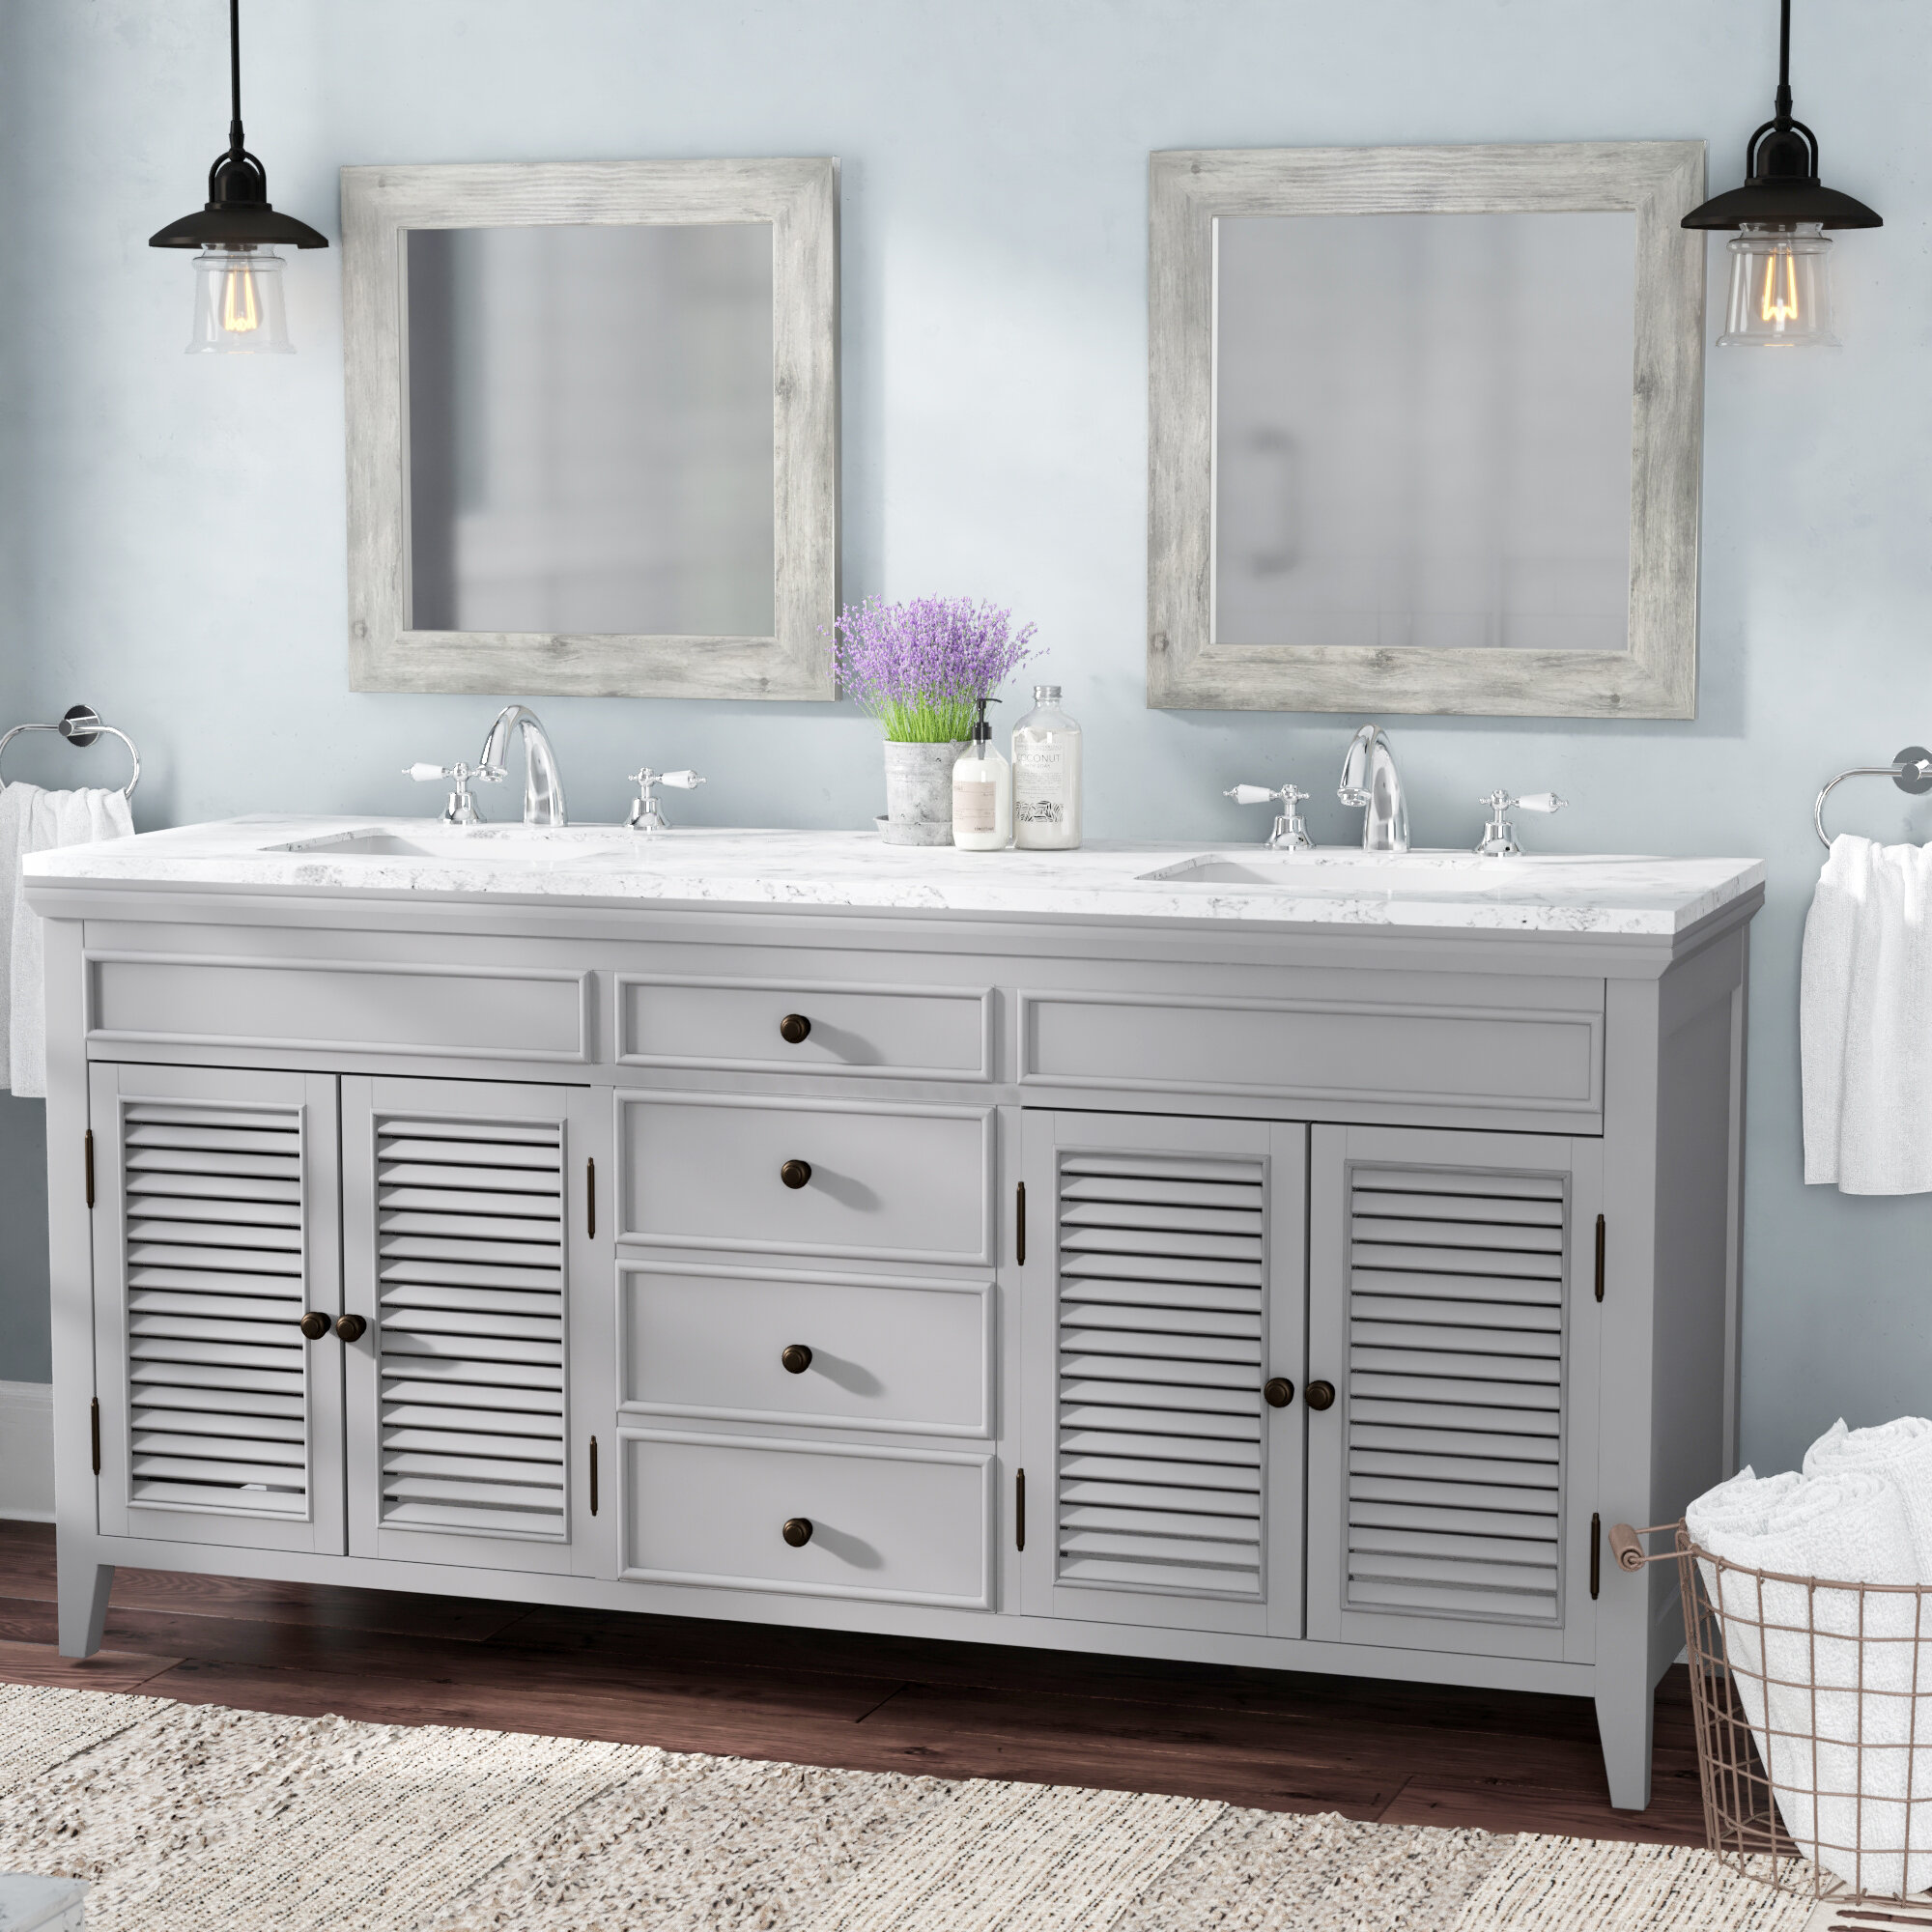 drawers england shop product d new details drawer action unit bathroom show j williams